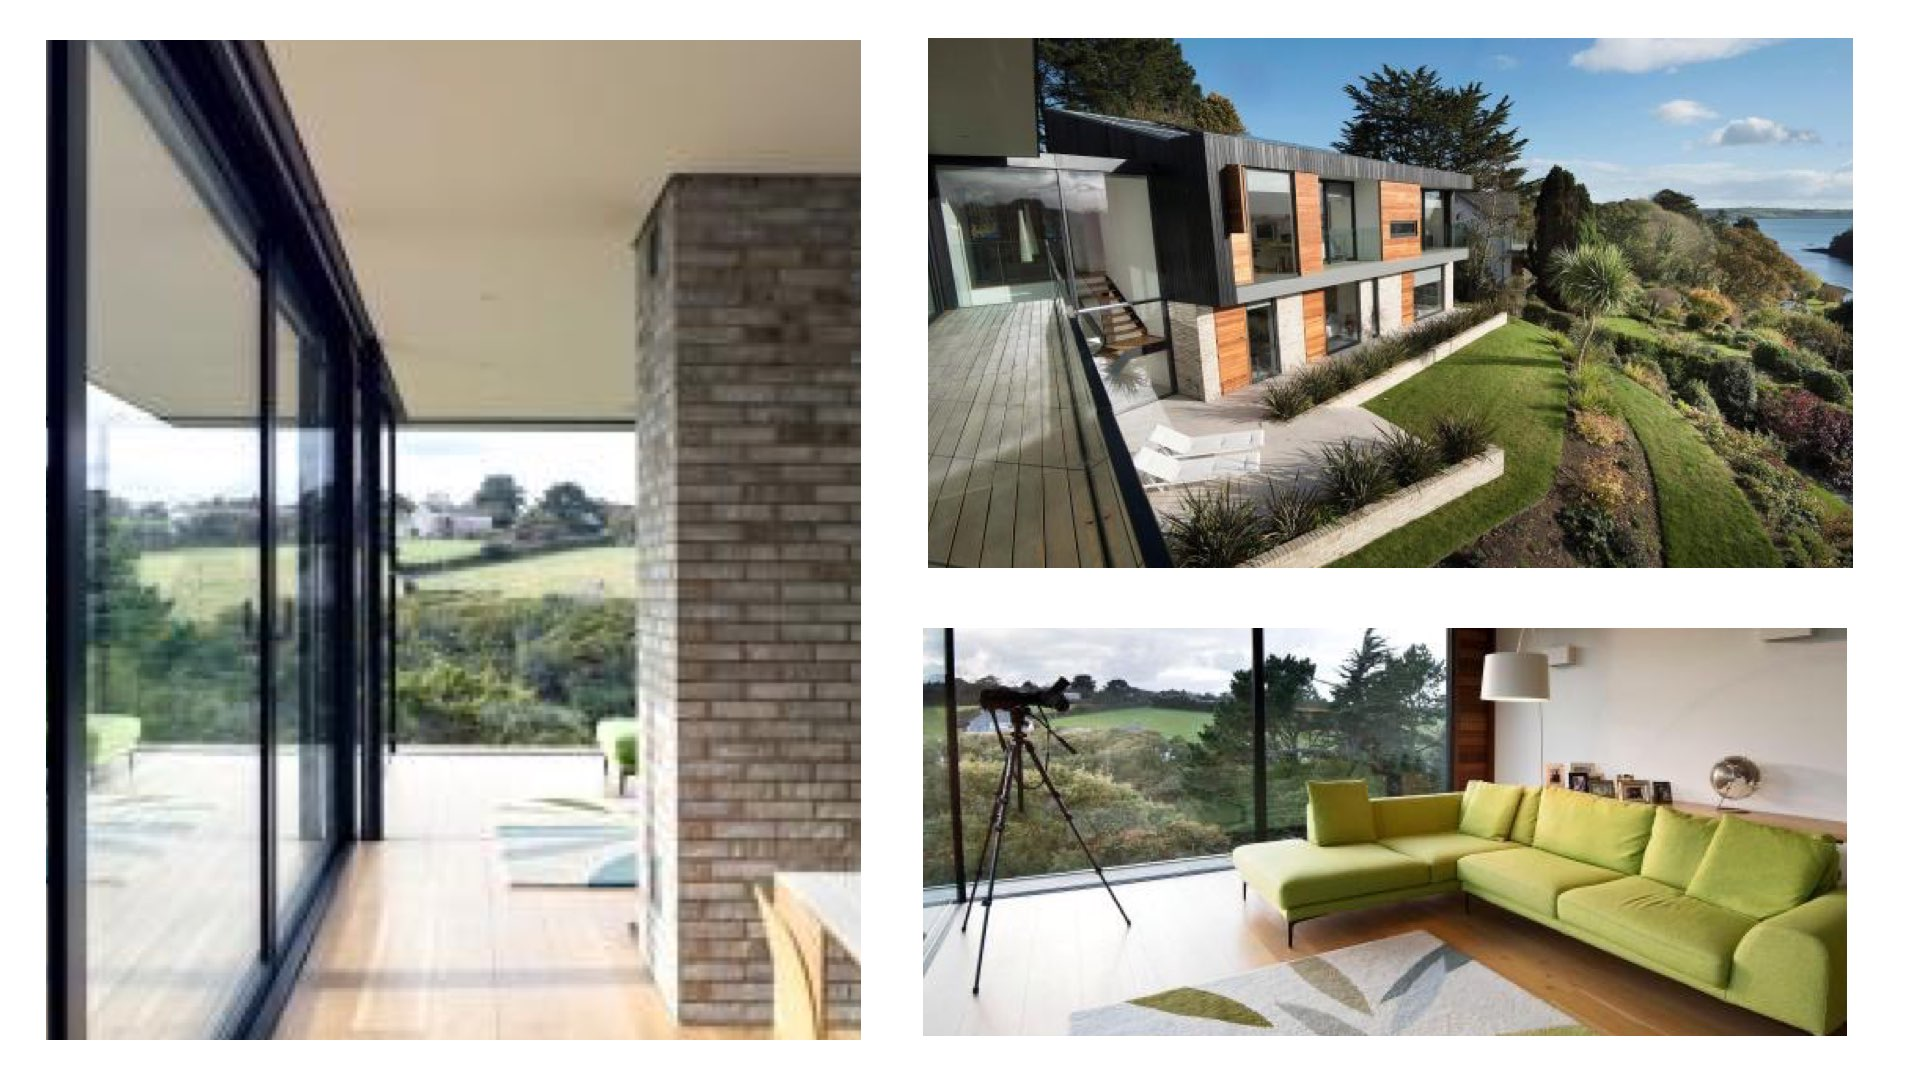 Cornwall project shortlisted for RIBA 'House of the Year' 2016